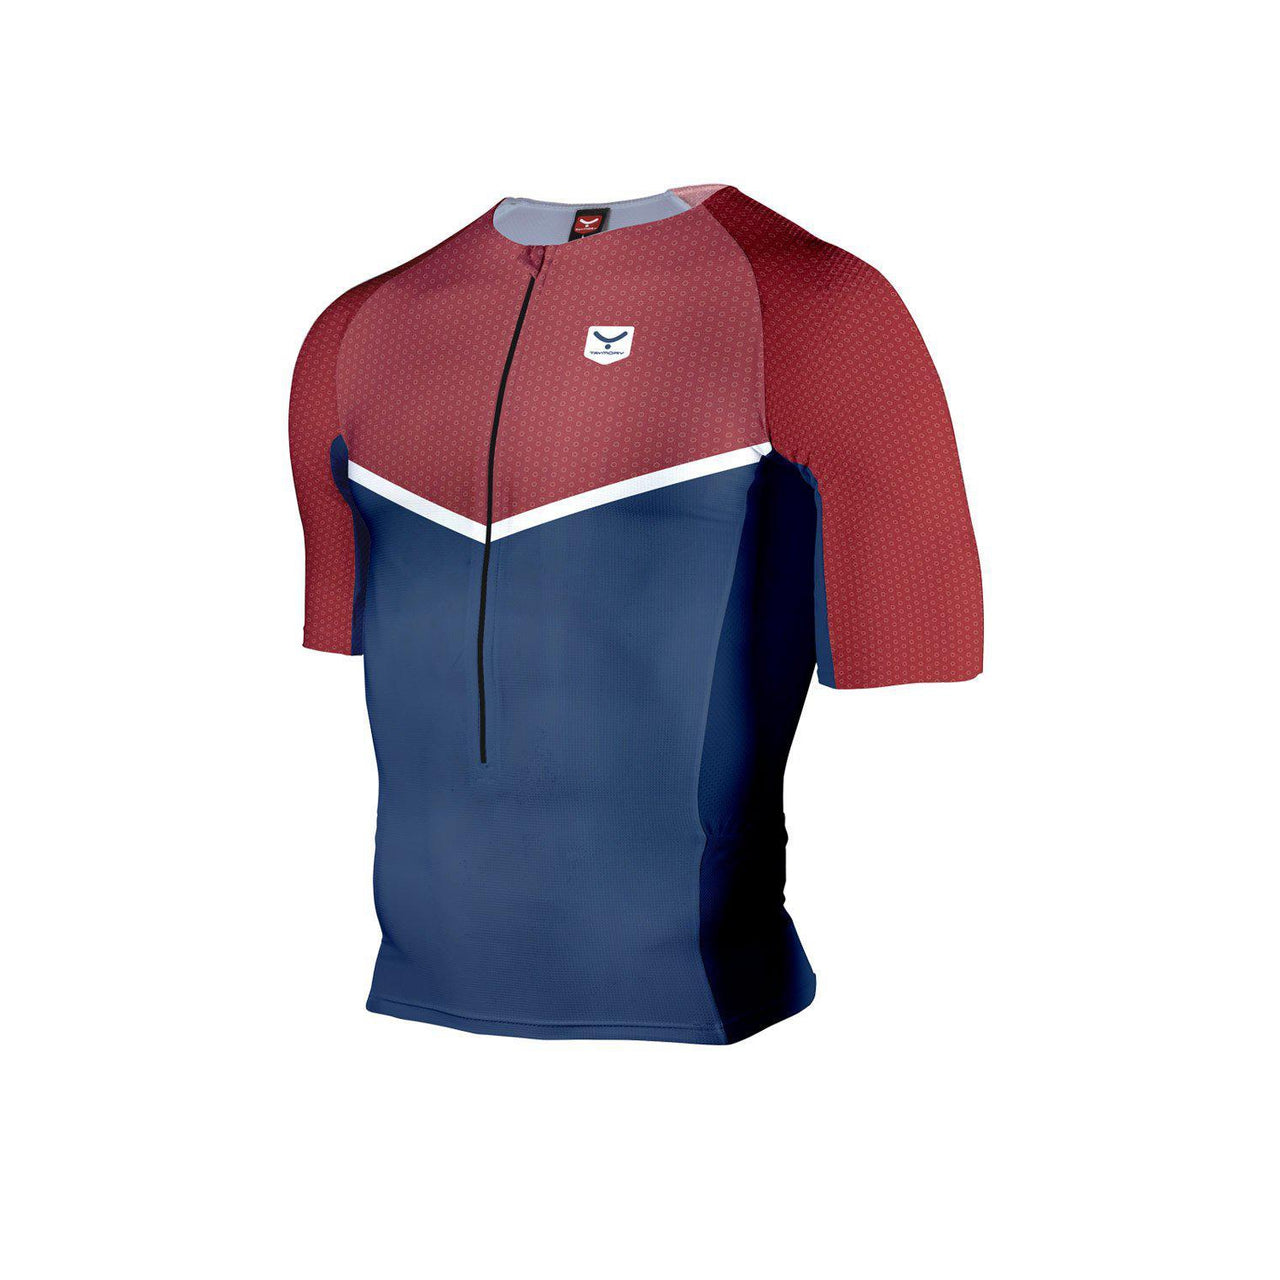 Camiseta Triatlon manga corta TAYMORY larga distancia. Hombre